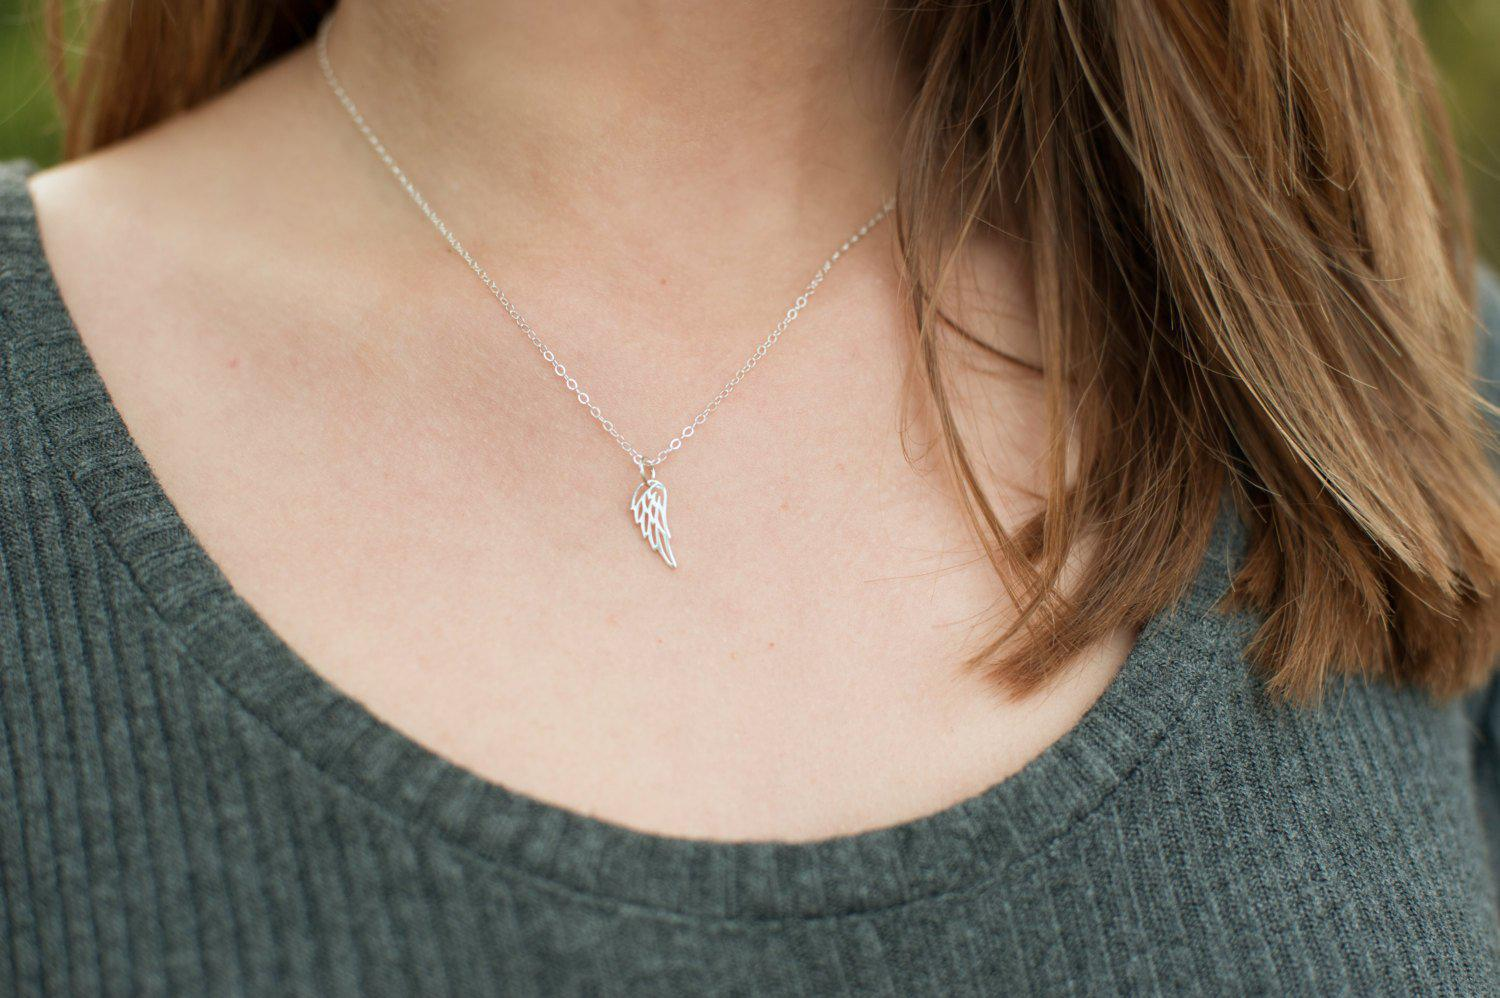 Dainty Wing Necklace - Miscarriage Gift - Sterling Silver-Sela+Sage